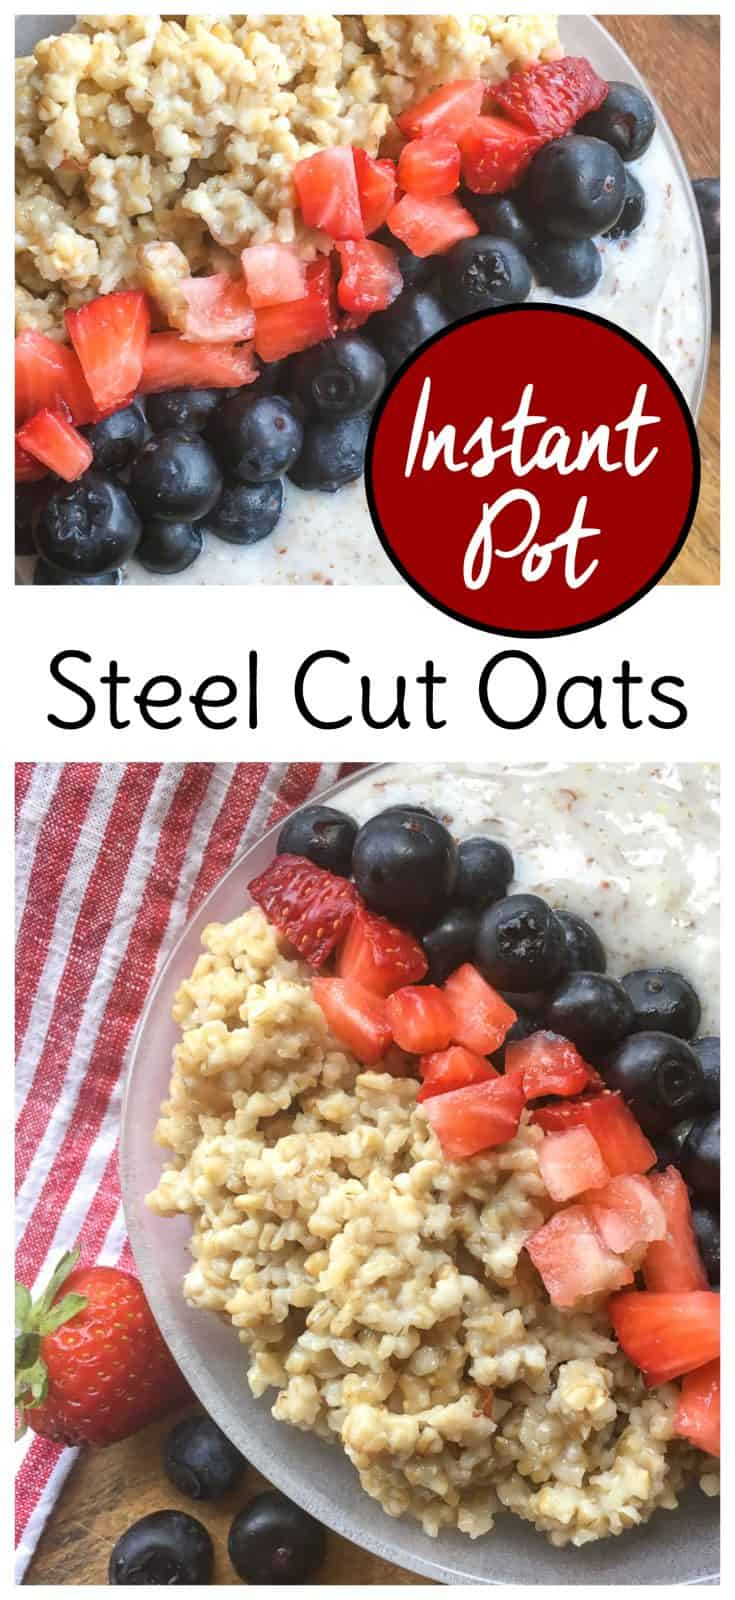 Instant Pot steel cut oats are an easy way to make ahead a healthy breakfast for the week. #instantpot #breakfast #steelcutoats